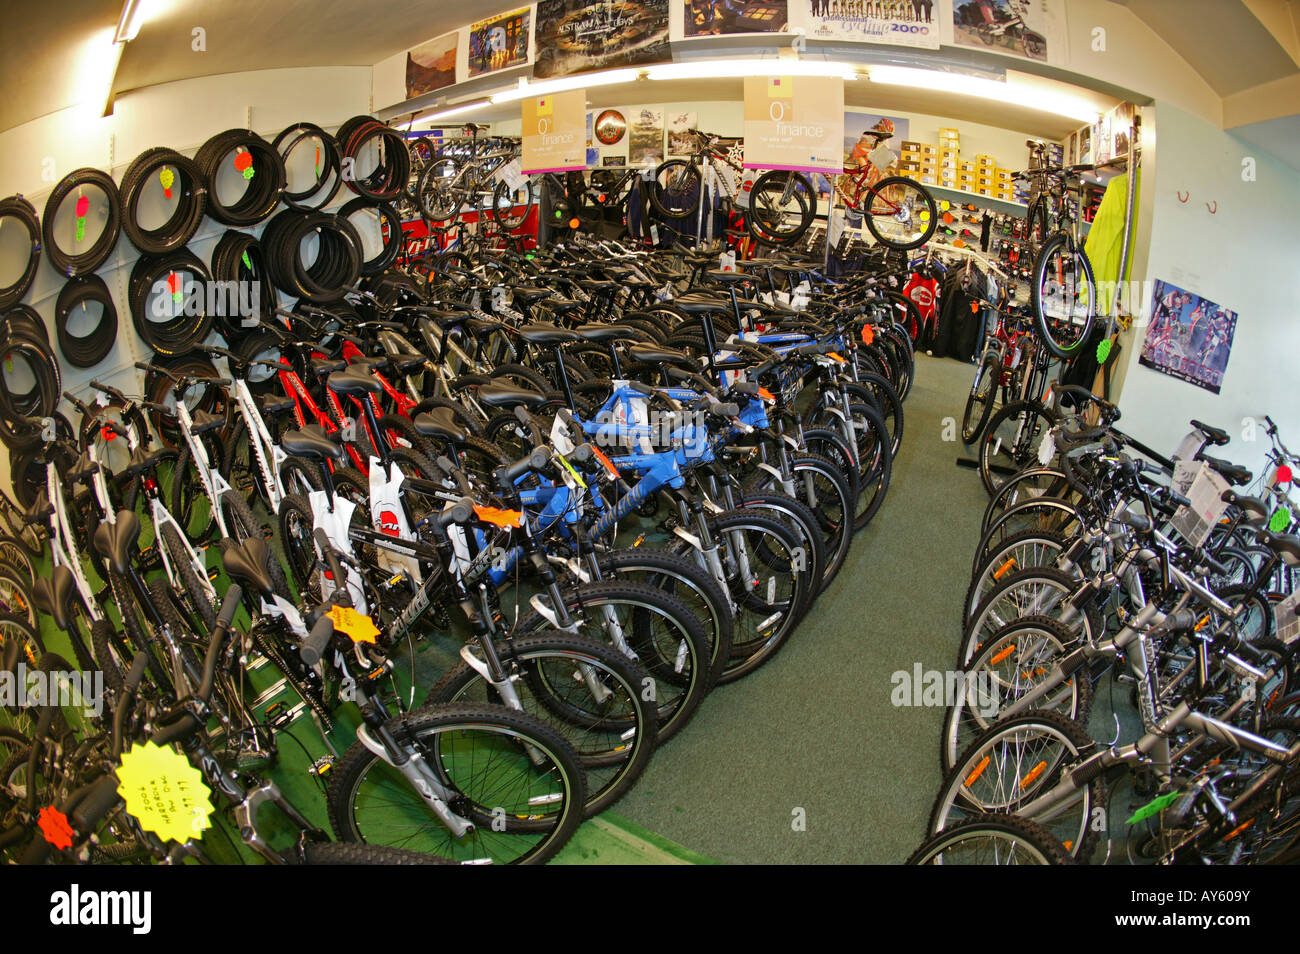 Mount Bike Shop The Interior Of A Bike Shop Full Off Mountain Bikes Stock Photo